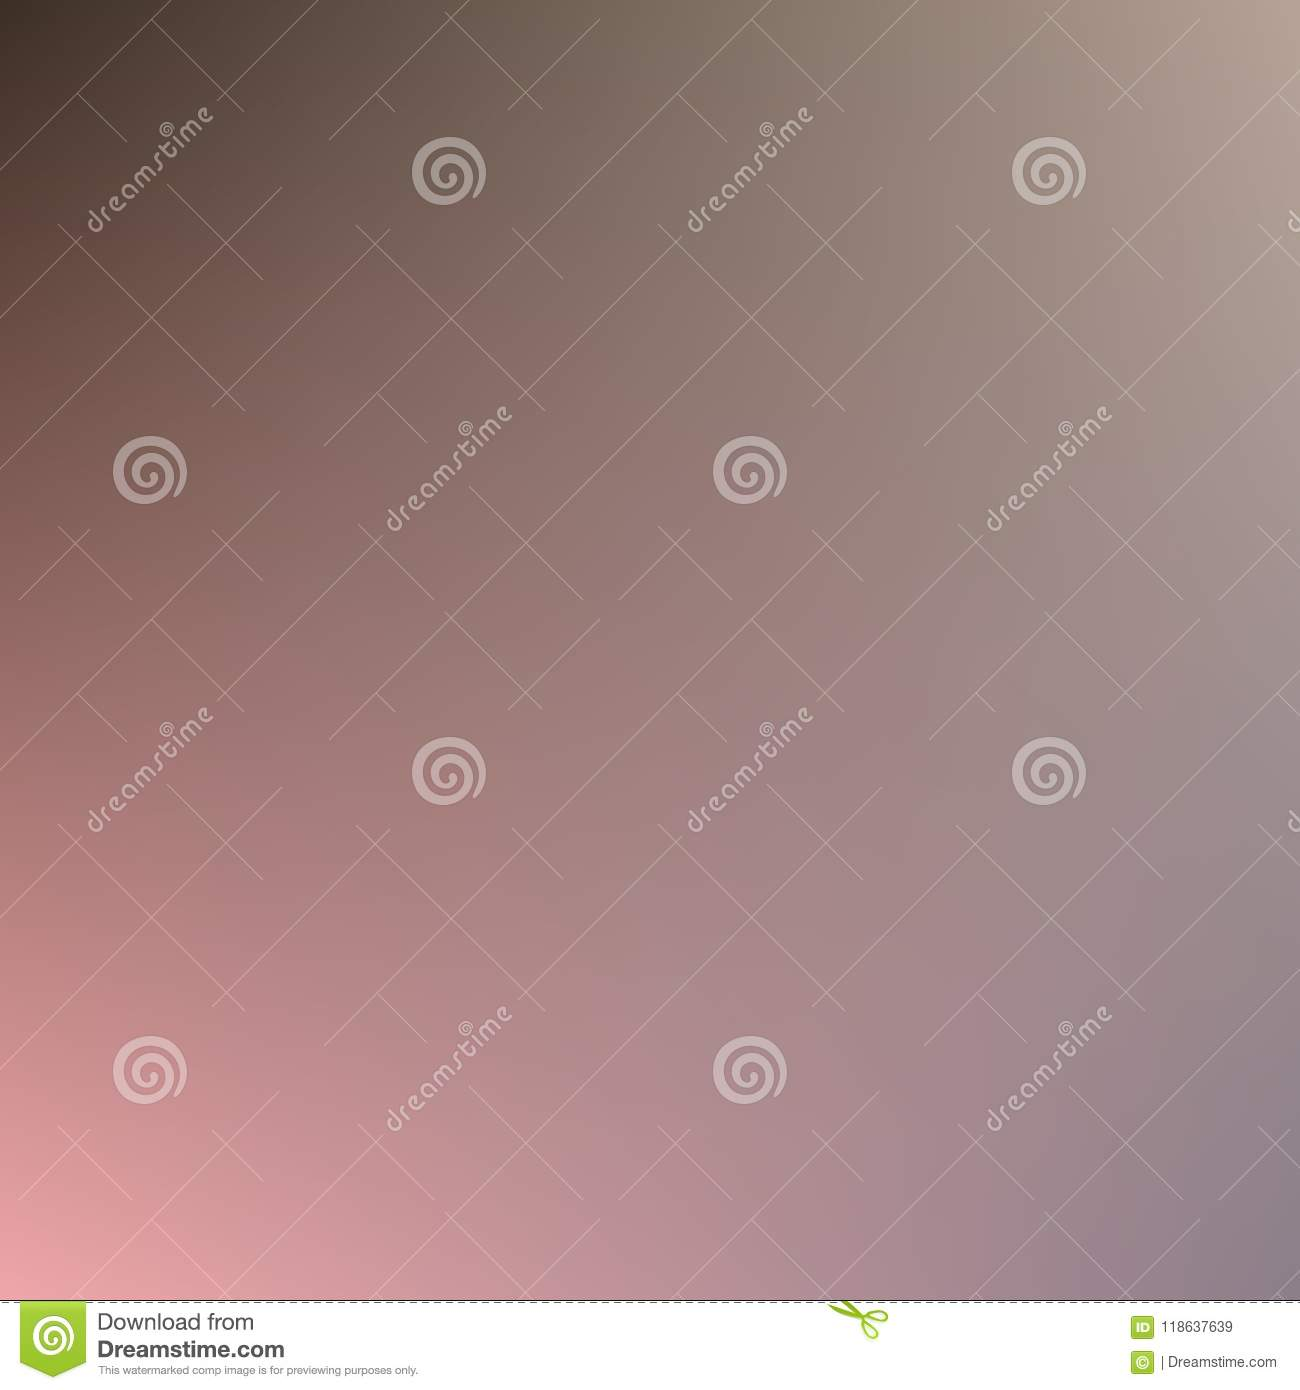 background modern and good looking grey and pink gradient background